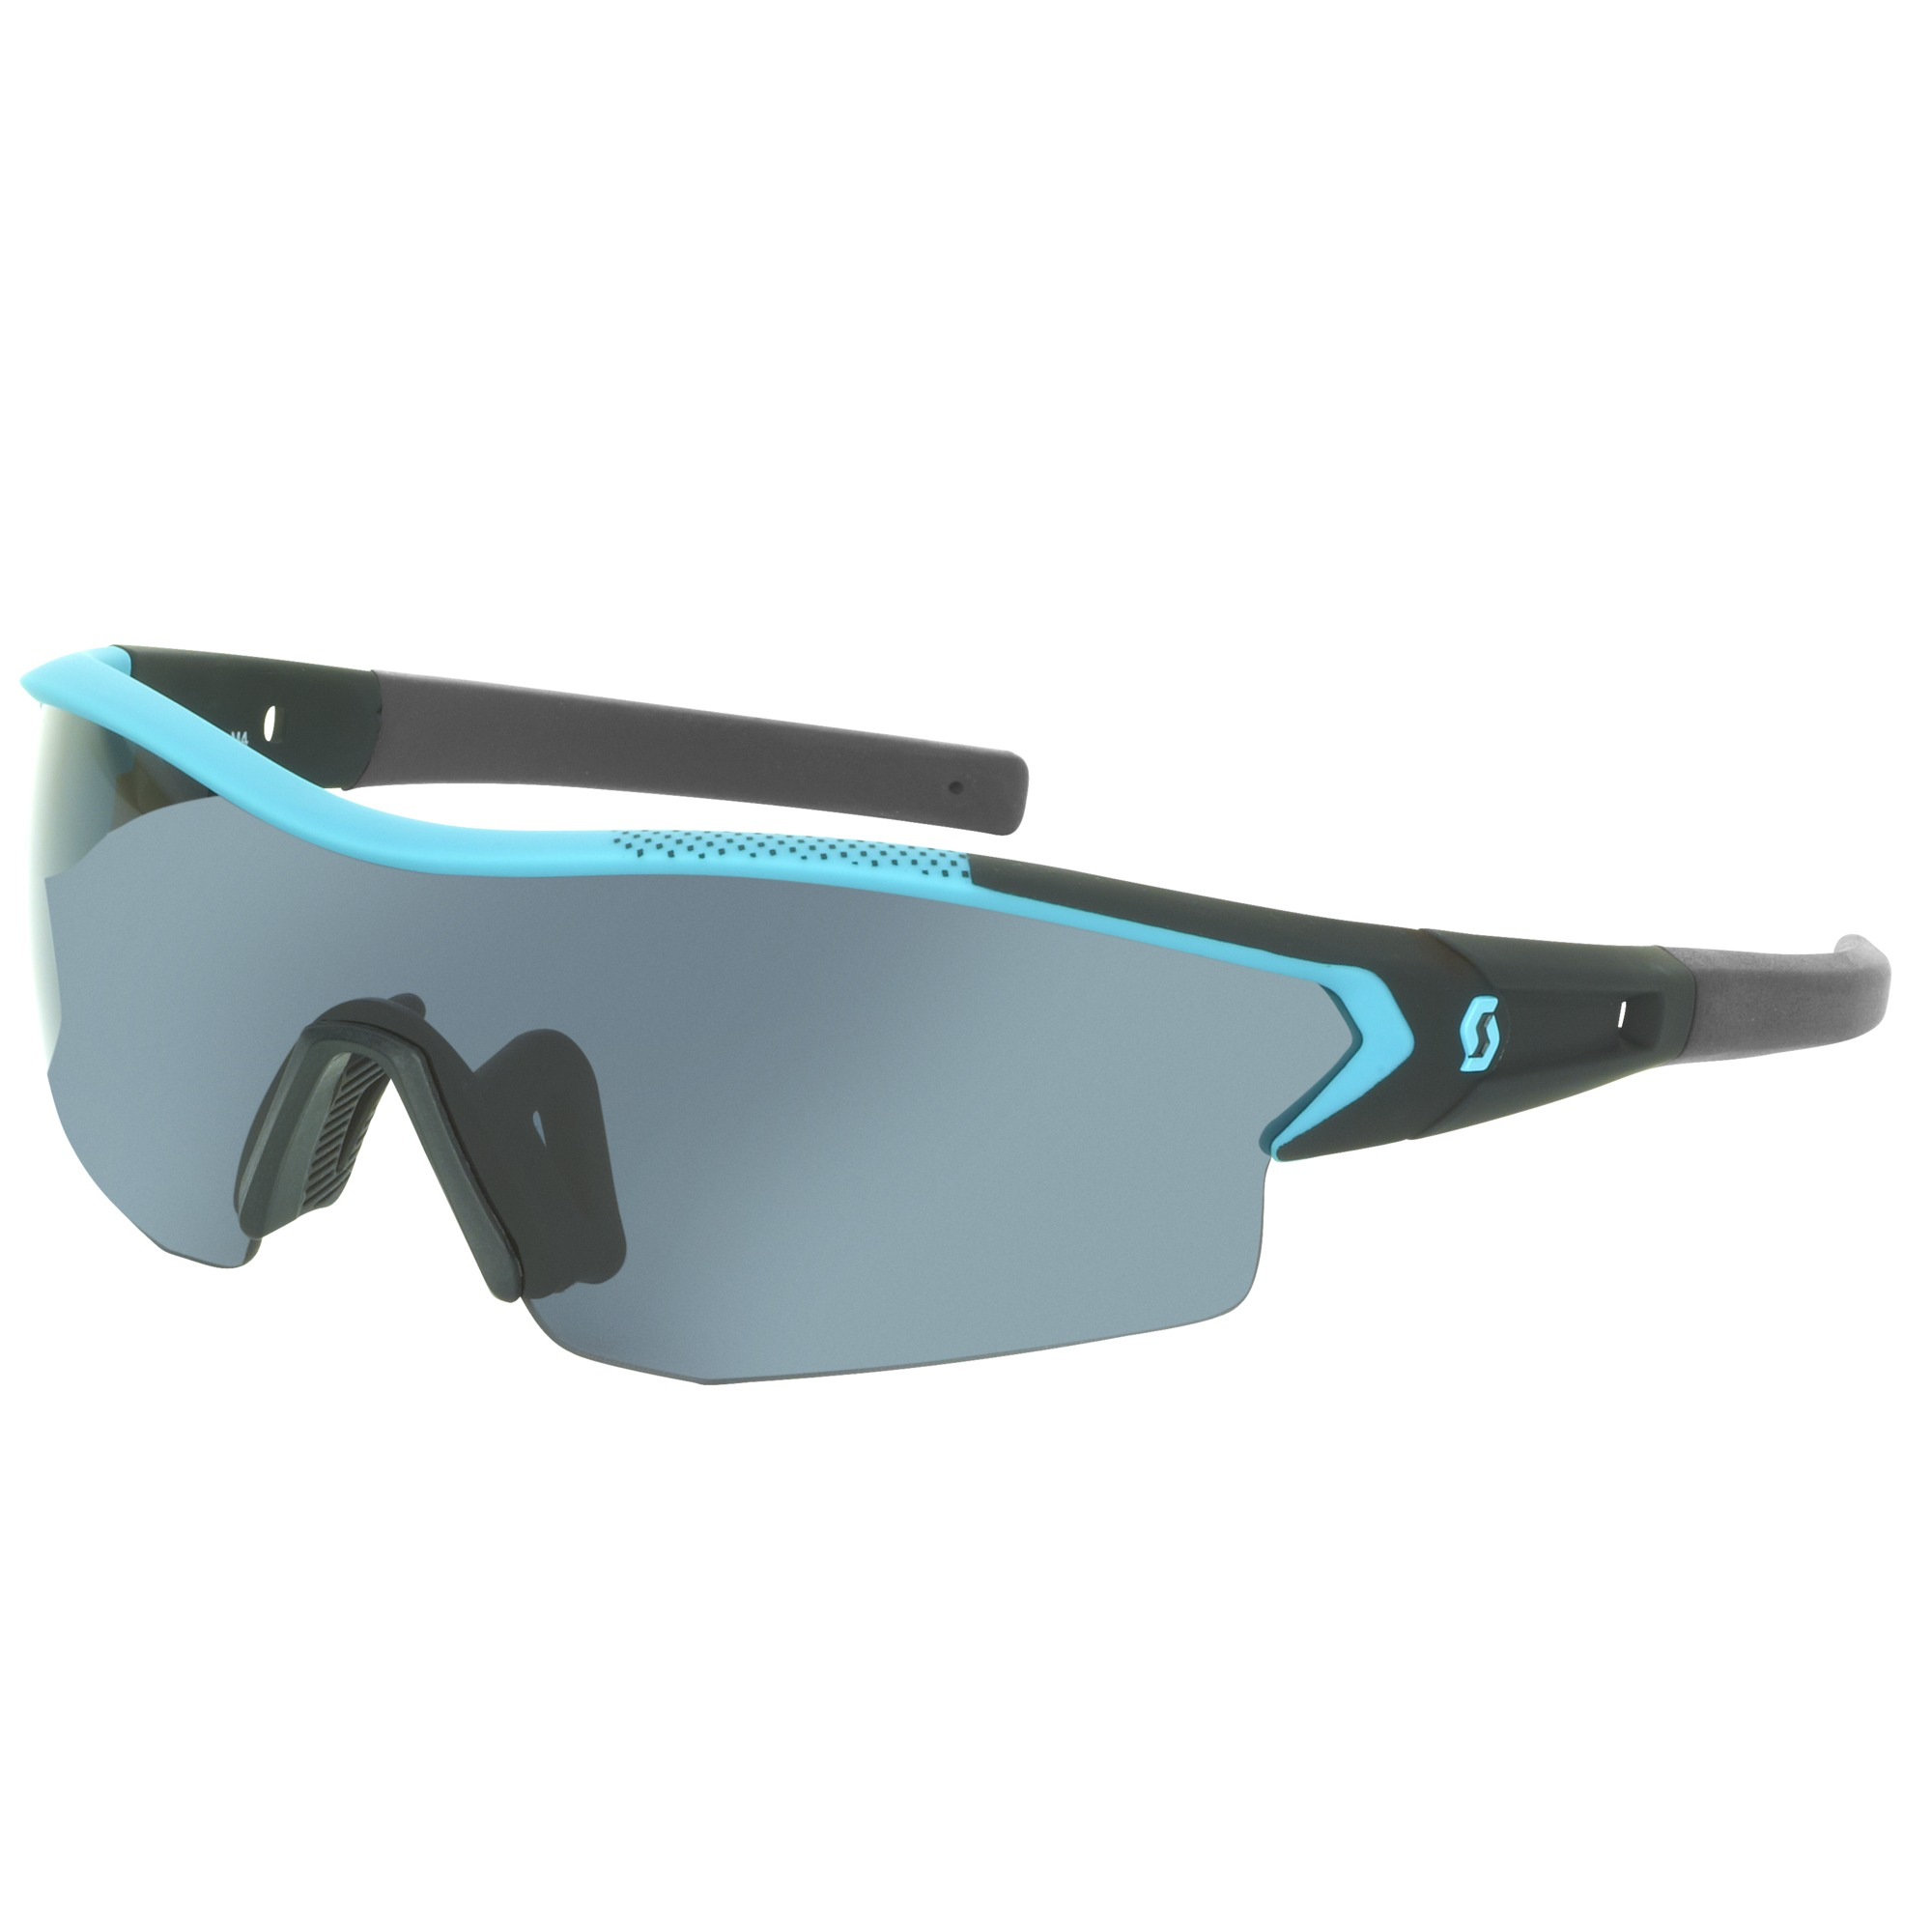 Scott Leap Sonnenbrille black glossy grey + clear 7XqR9FgFjN